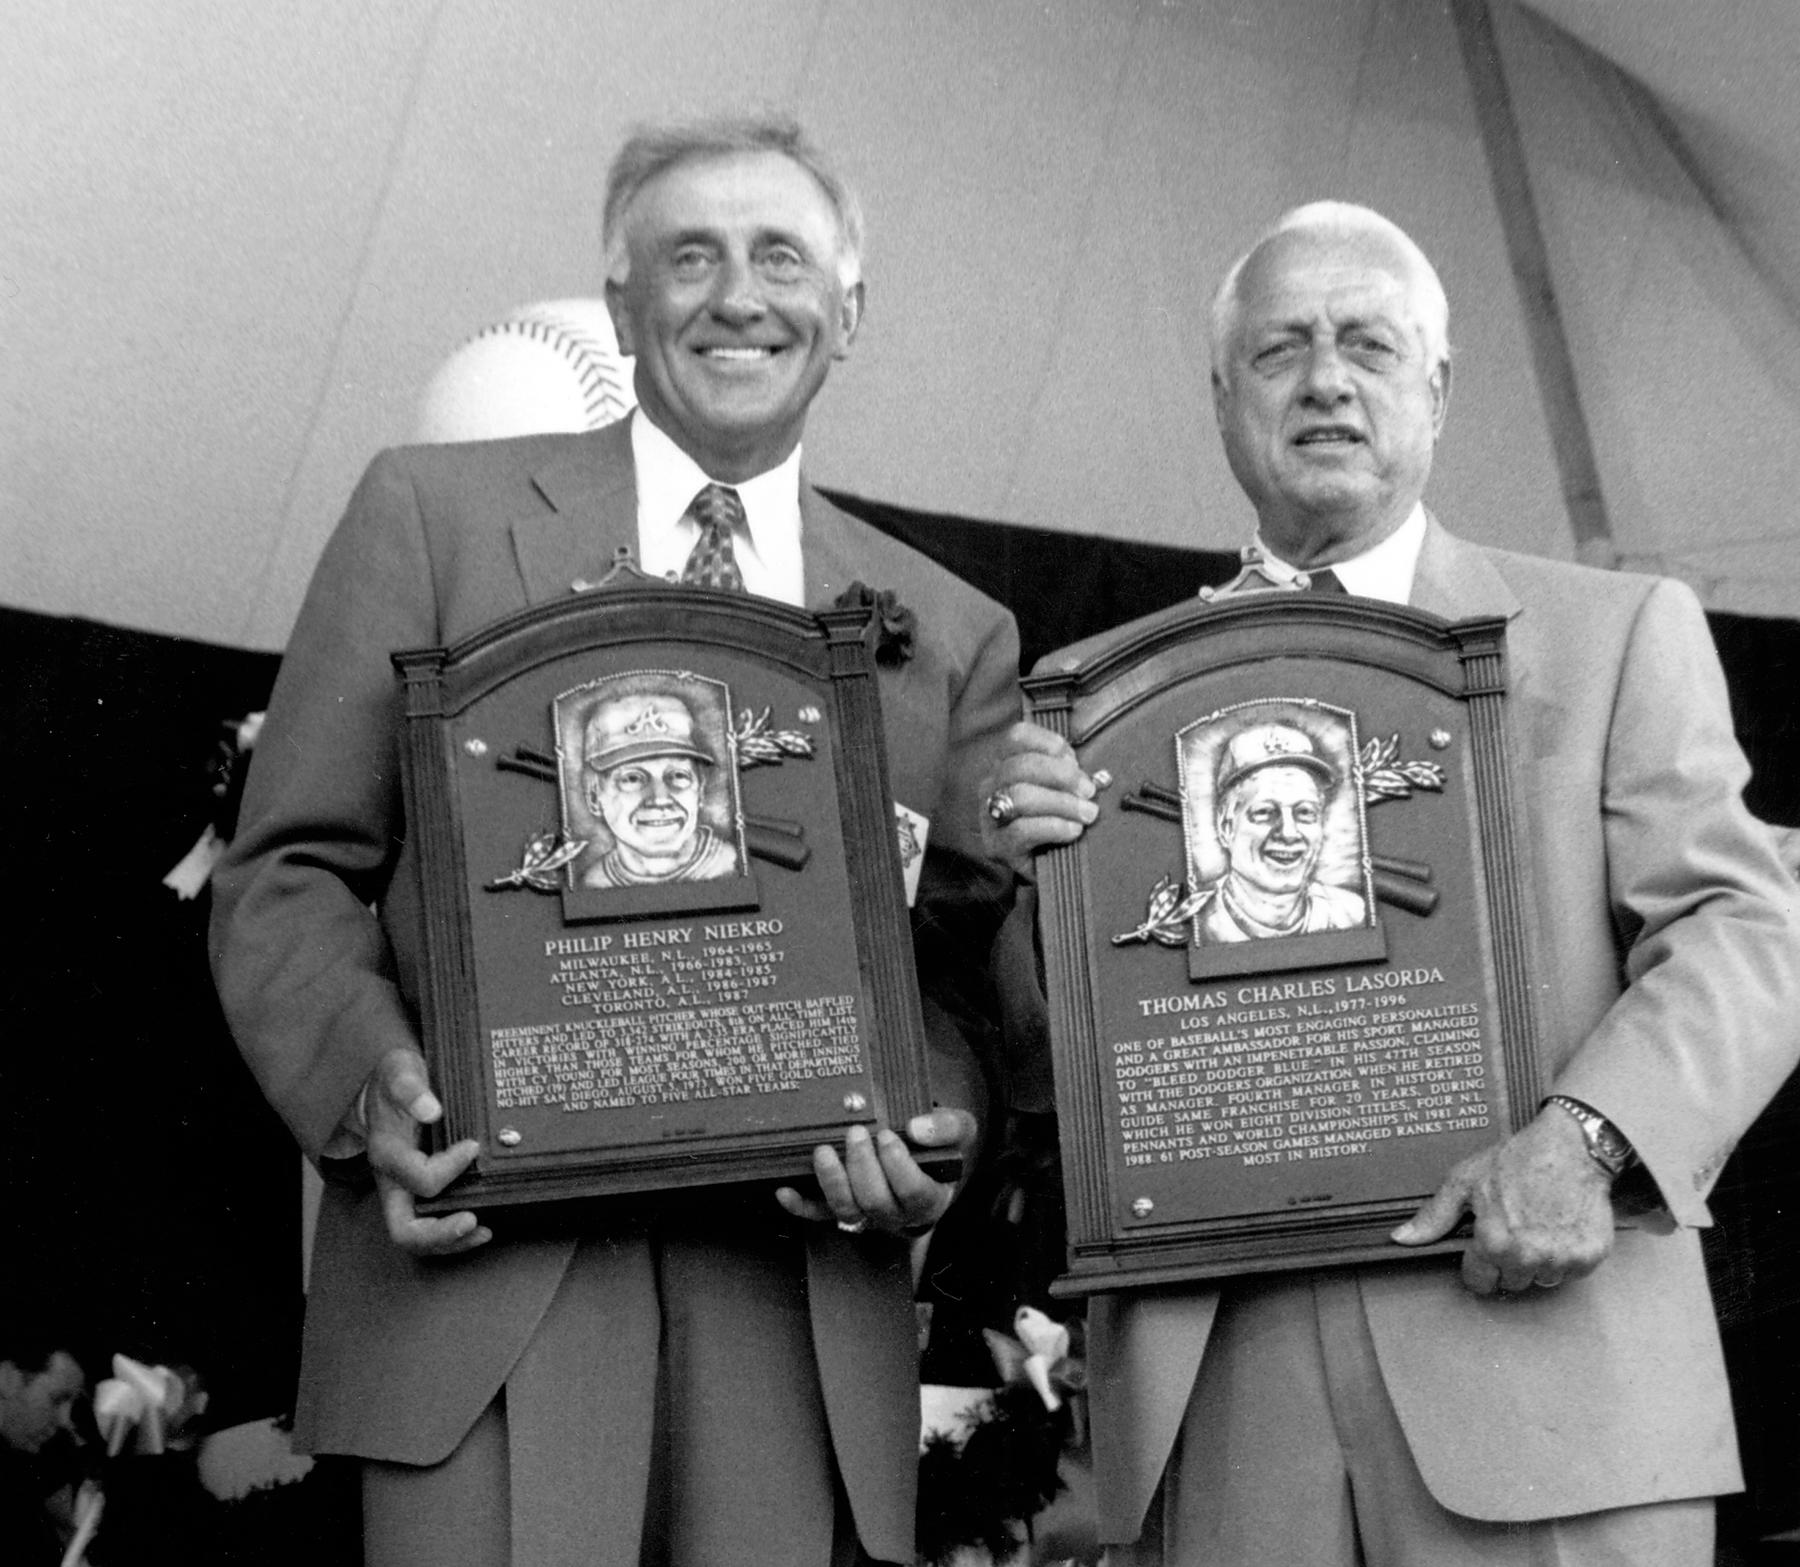 A detail view of Phil Niekro, left, and Tommy Lasorda holding their plaques on stage at the 1997 Hall of Fame Induction Ceremony. BL-17.99 (National Baseball Hall of Fame Library)